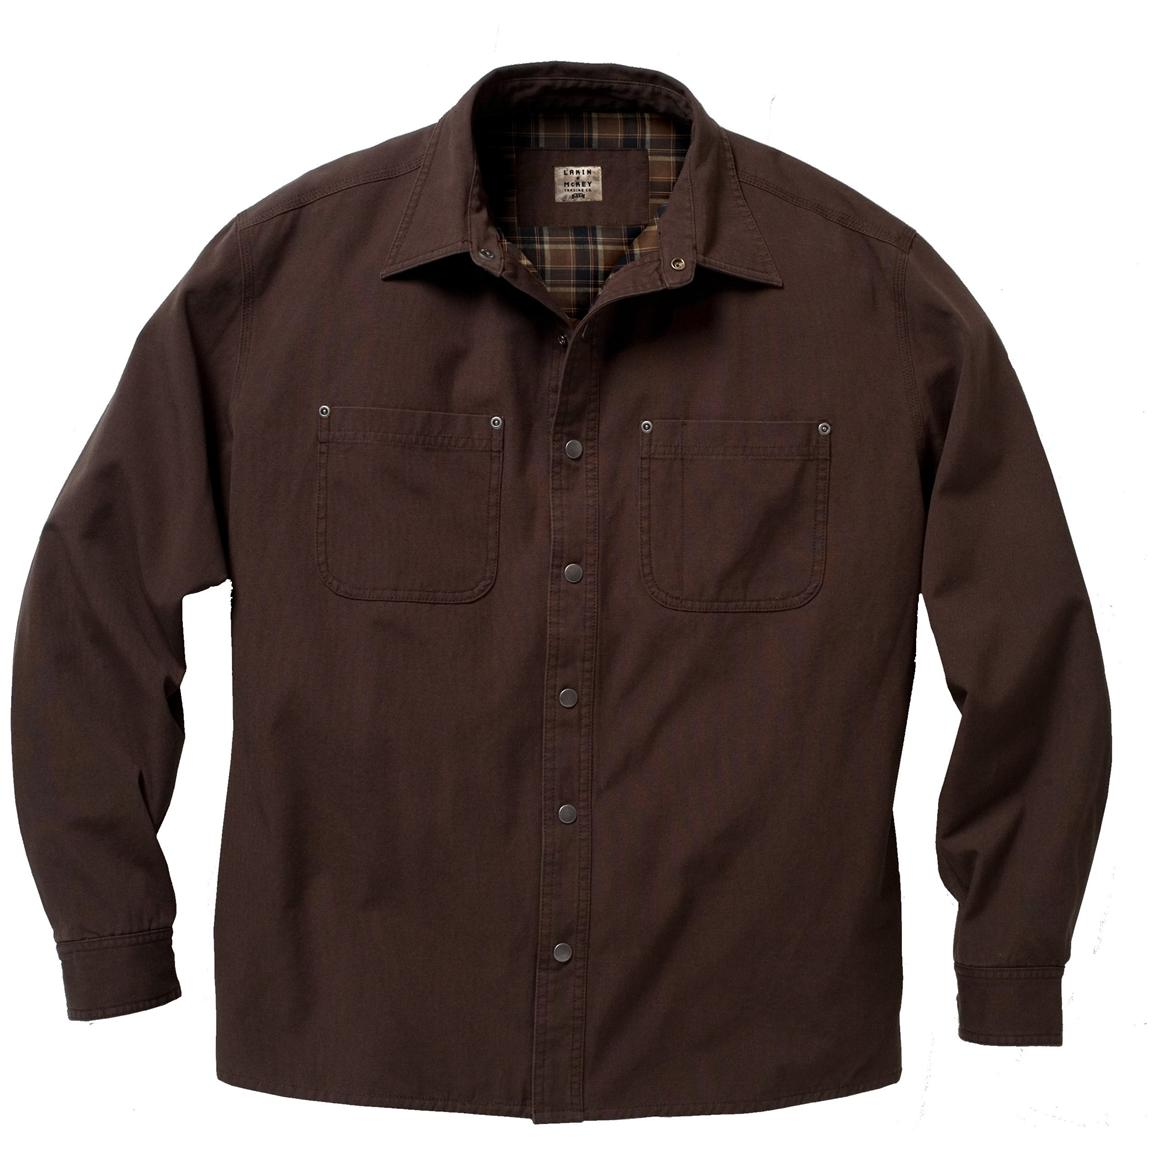 Regular or Tall Lakin-McKey Men's Flannel Lined Shirt Jacket